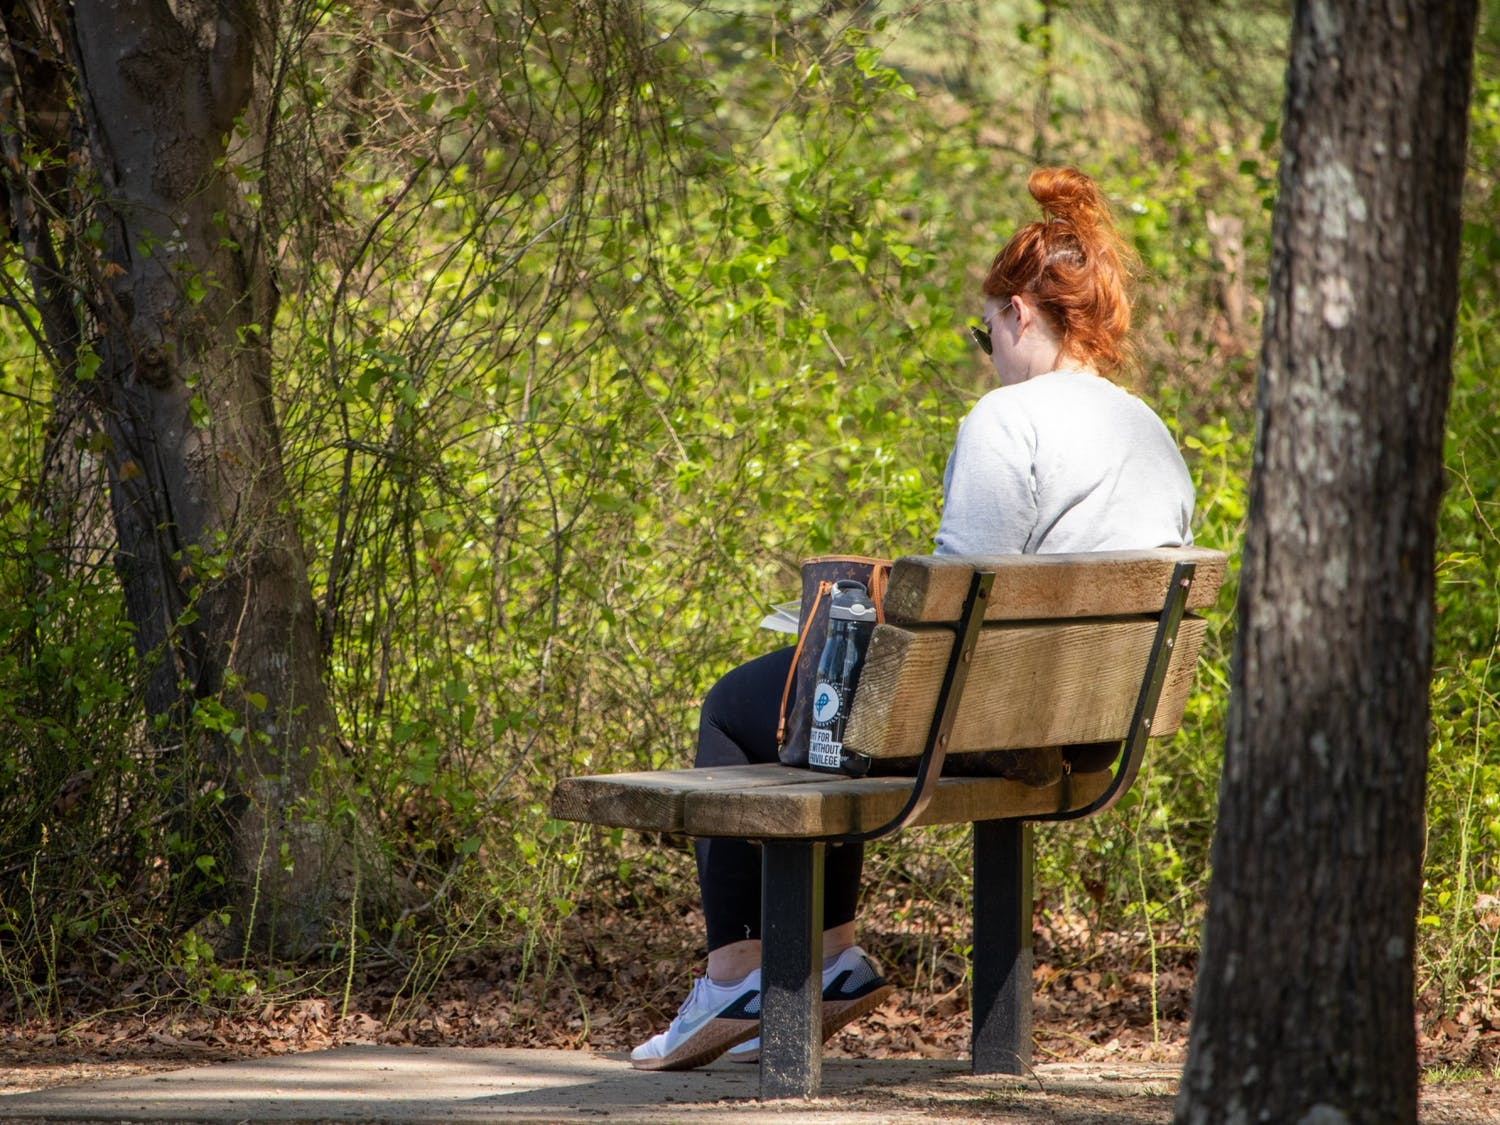 A woman reads a book in Jetton Park in Cornelius, NC on Monday, April 12, 2021.